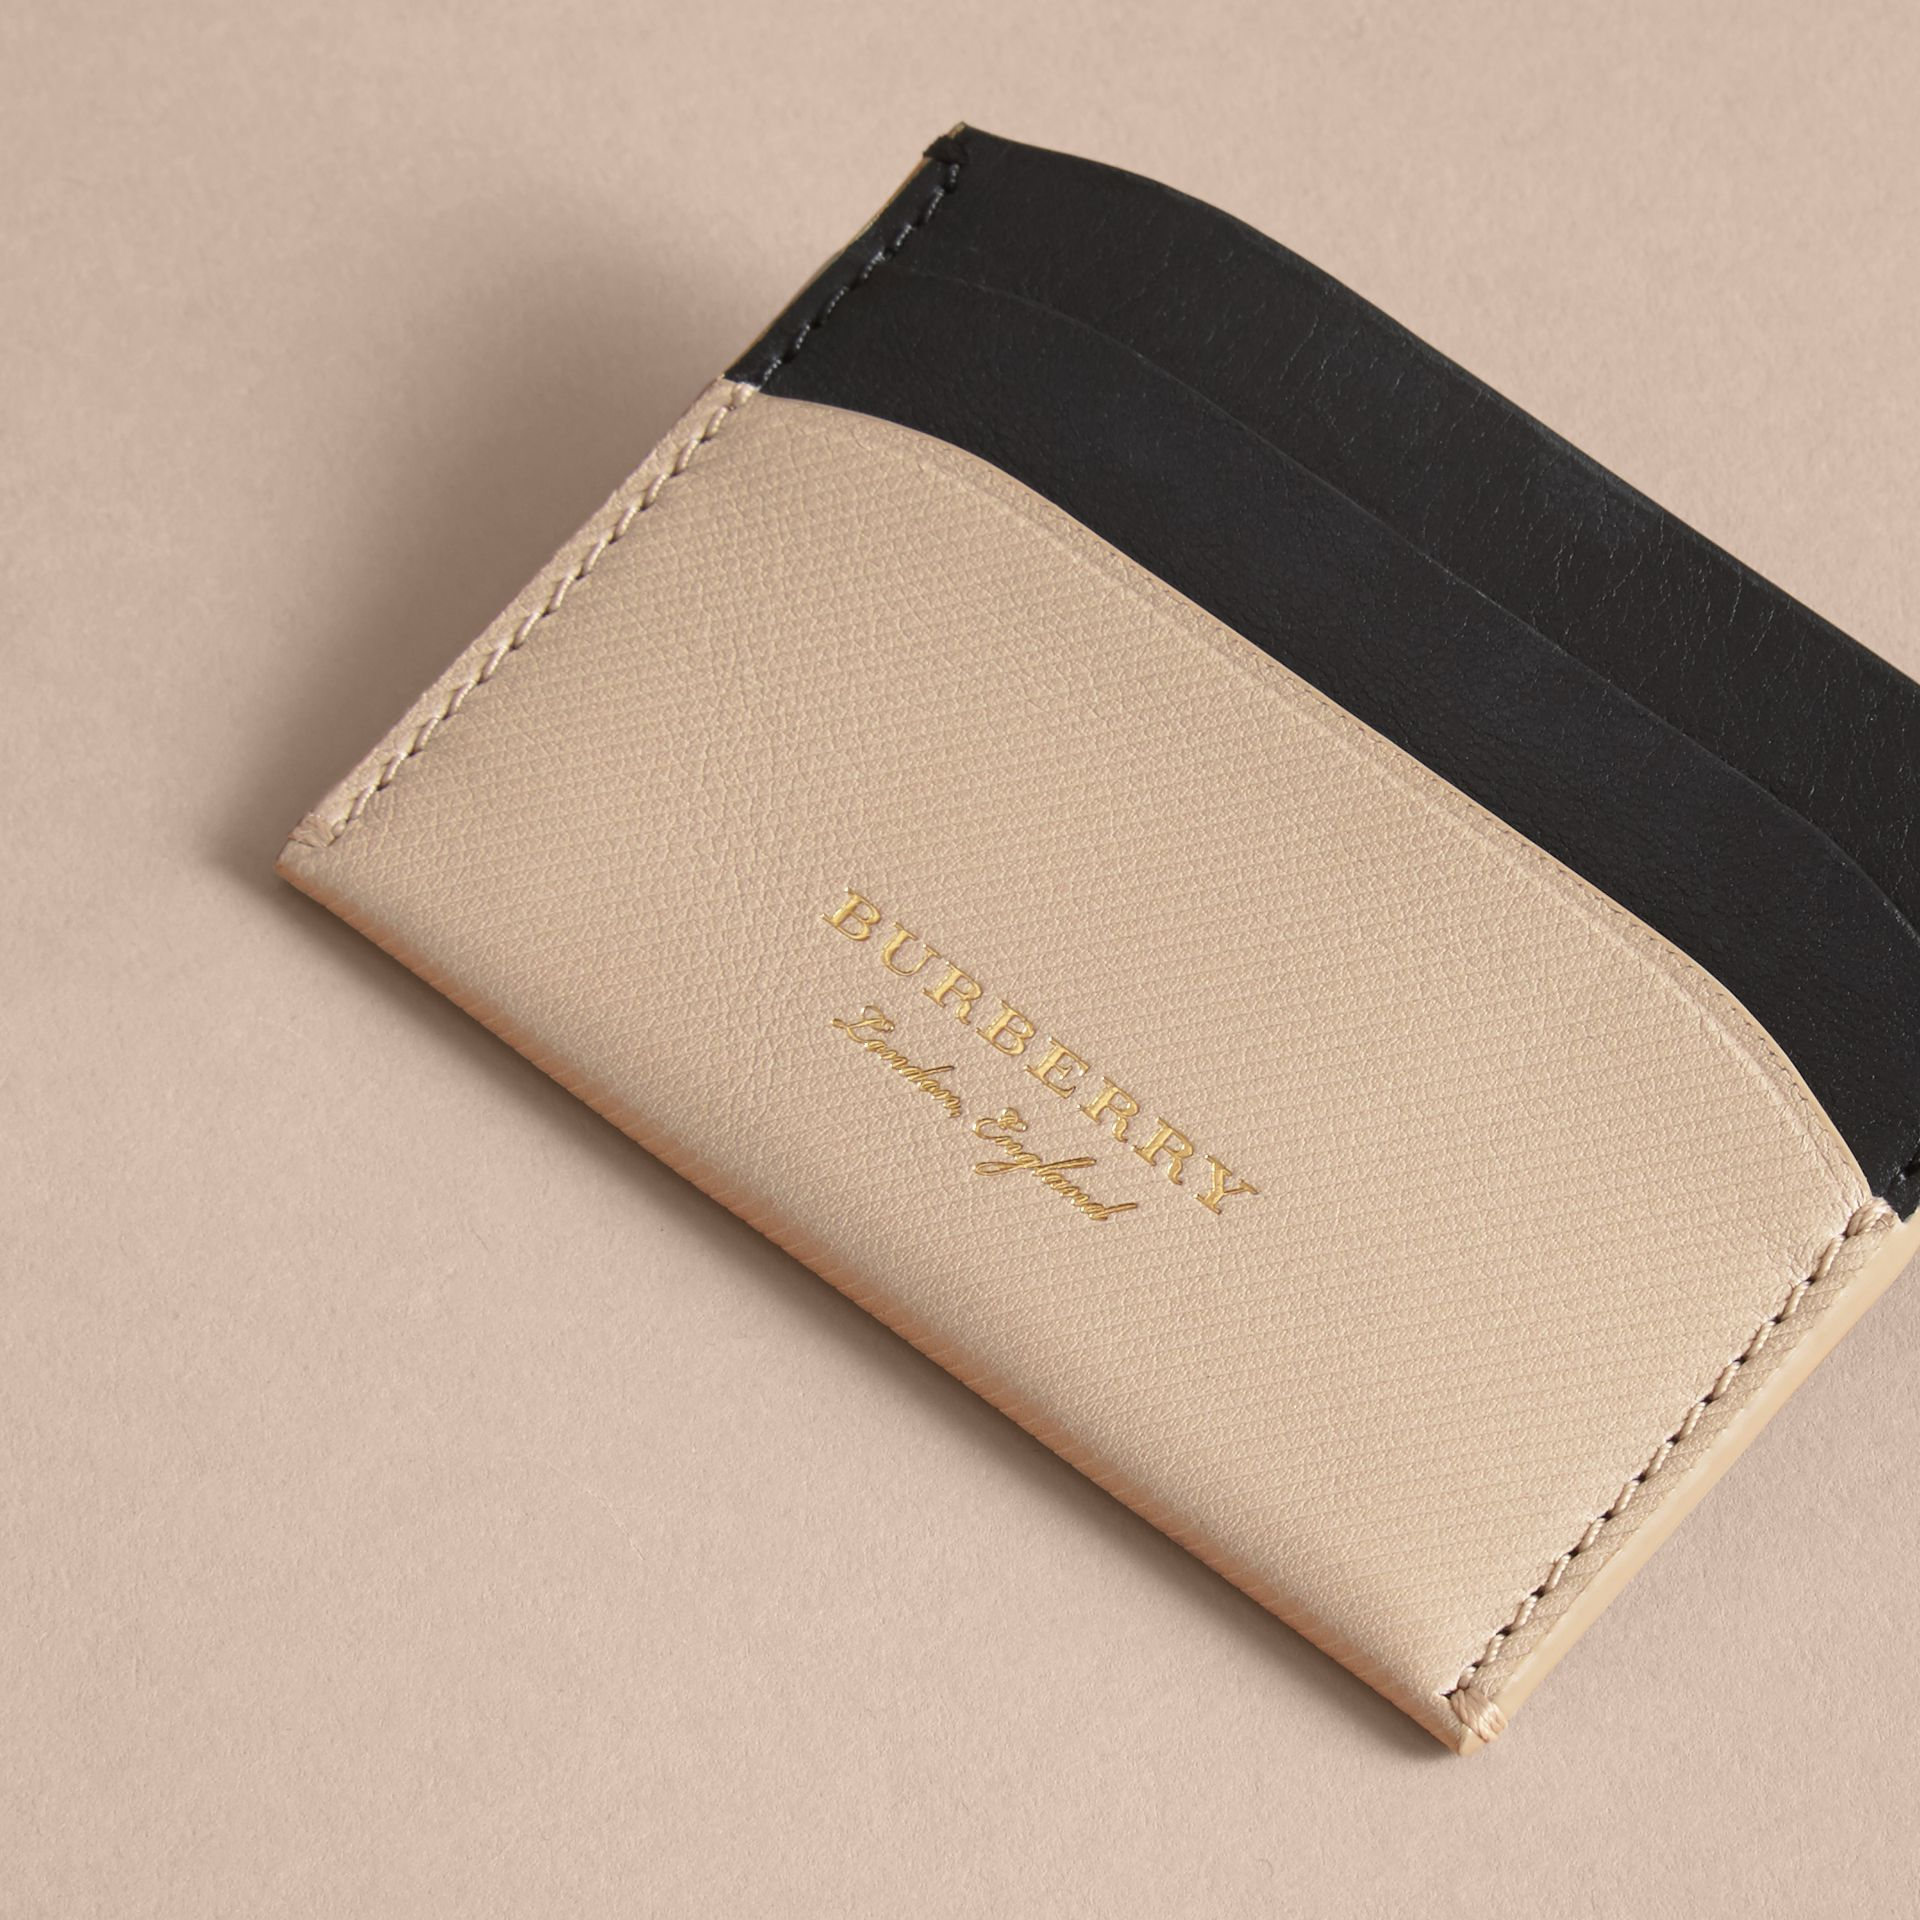 Two-tone Trench Leather Card Case in Limestone/ Black - Women | Burberry - gallery image 2